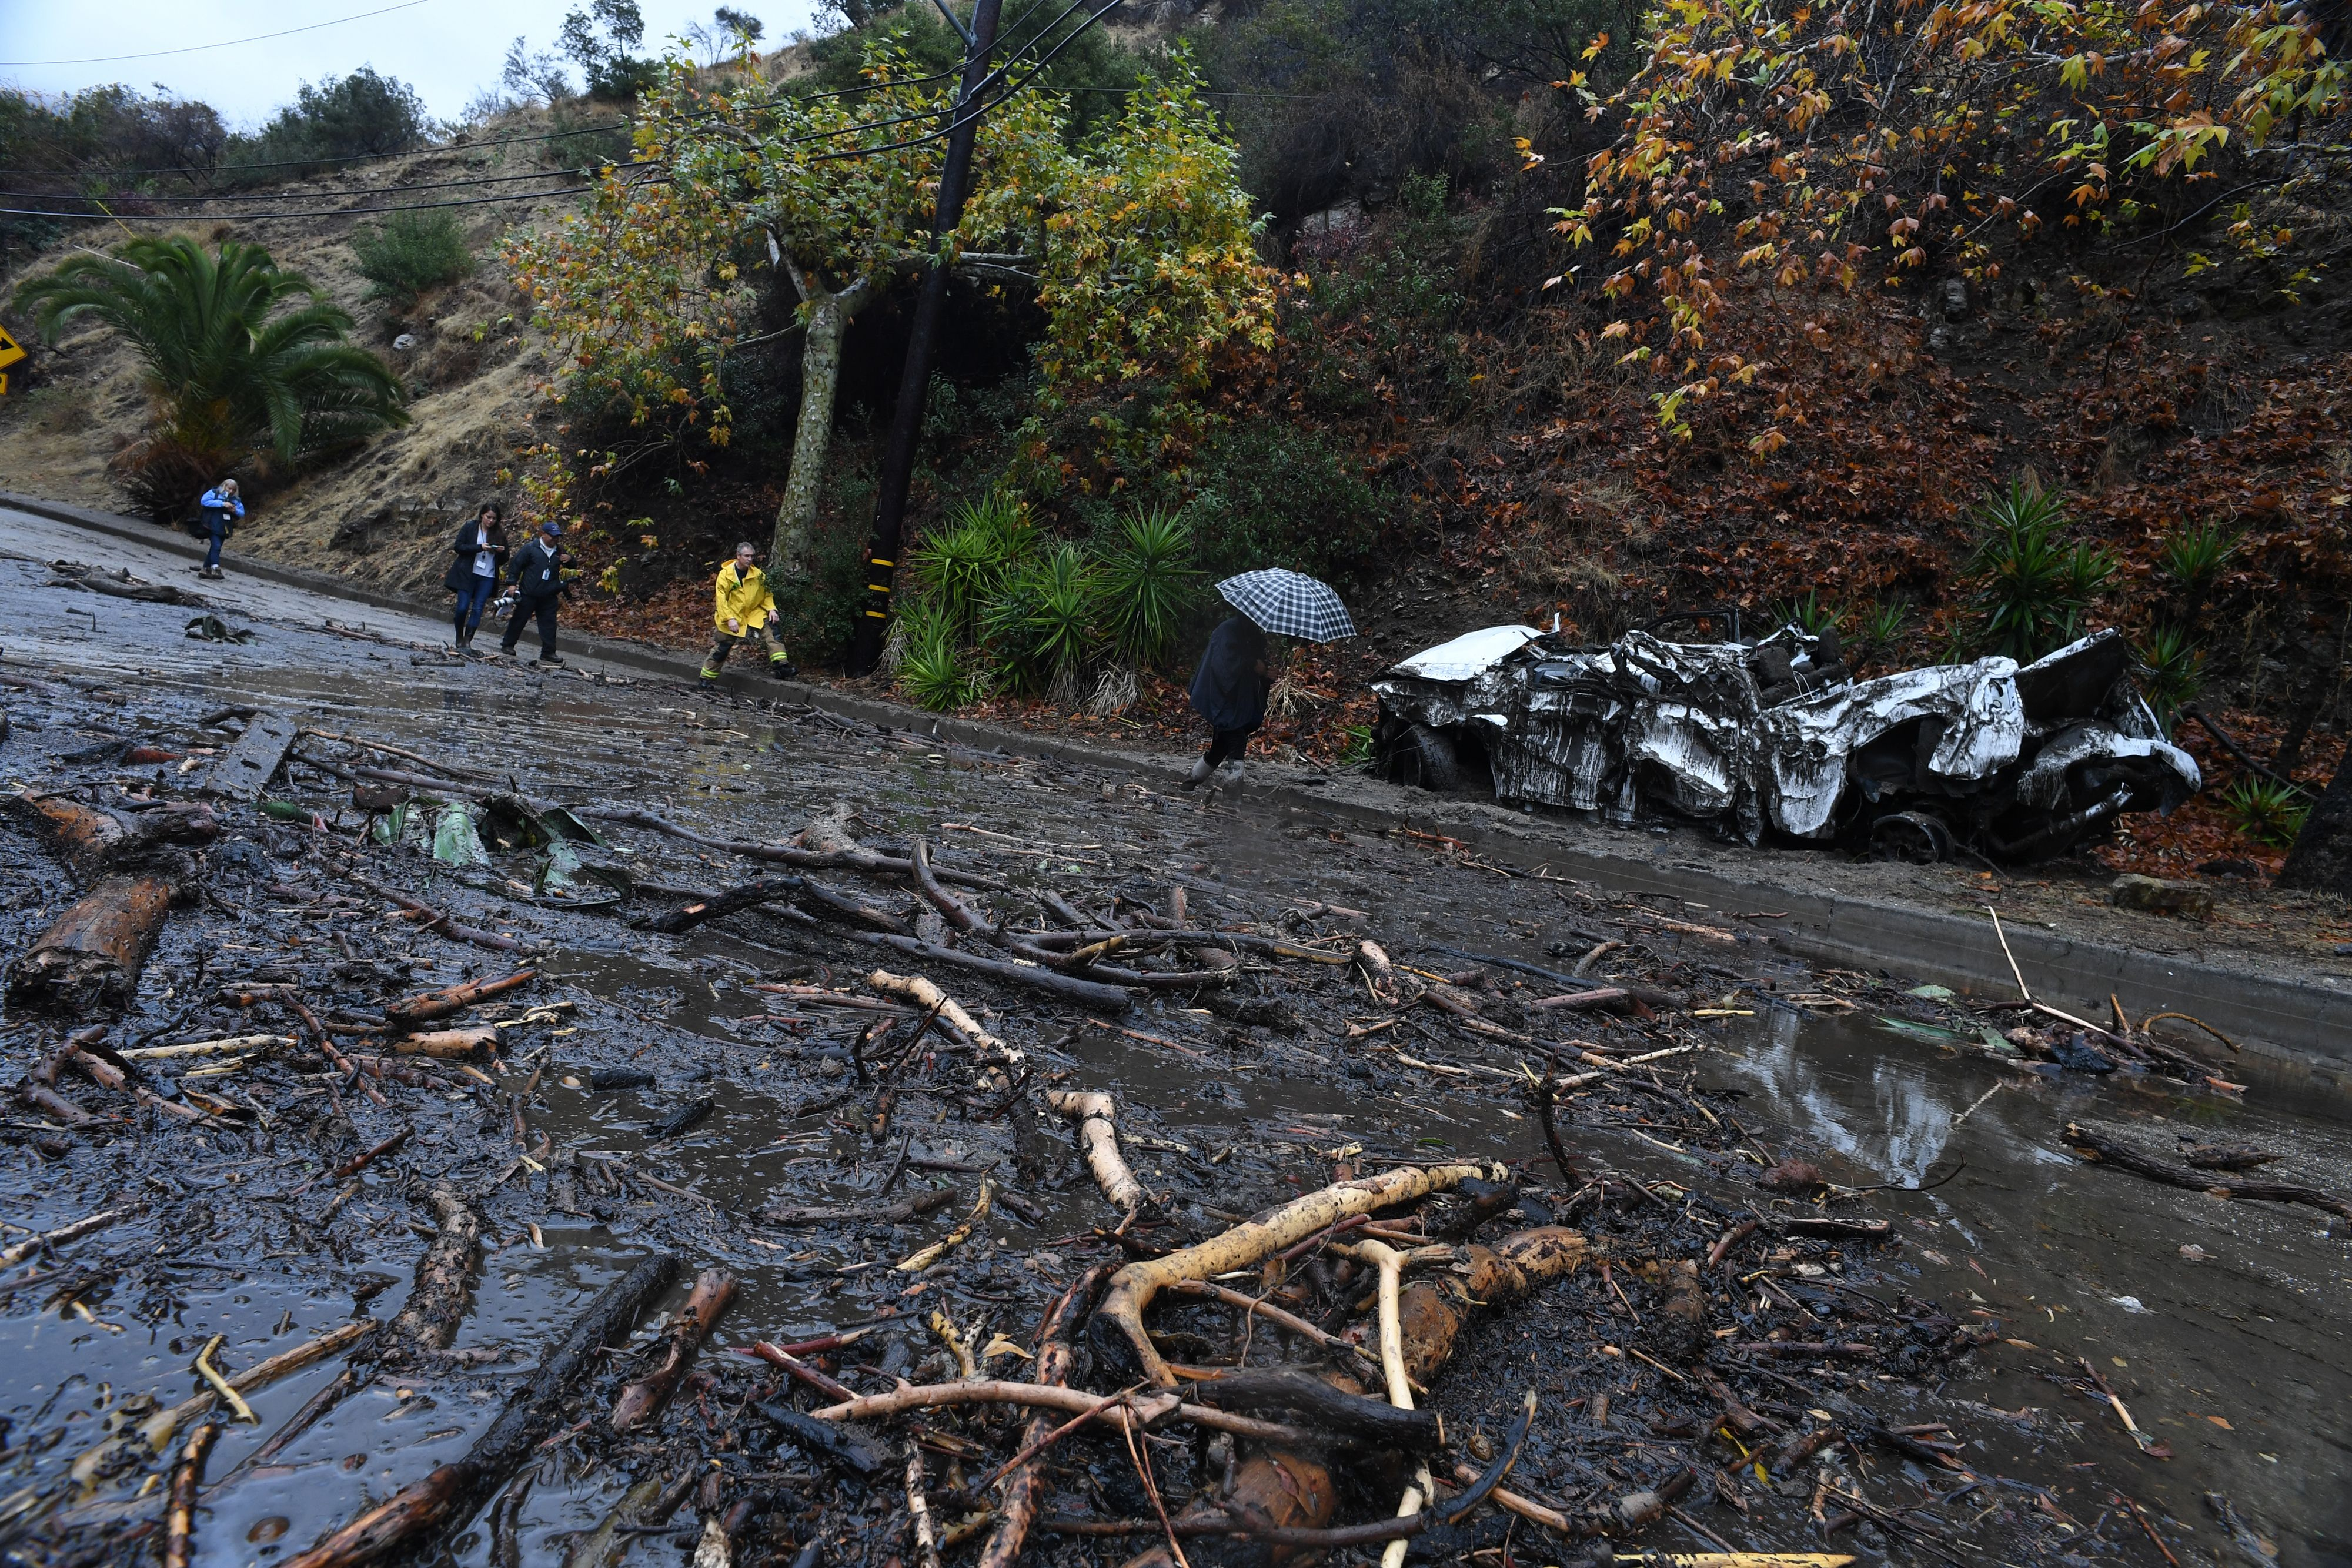 A firefighter (in yellow) instructs journalists to retreat to safer ground after a rain-driven mudslide destroyed two cars and damaged property in a neighborhood under mandatory evacuation in Burbank, California, January 9, 2018.